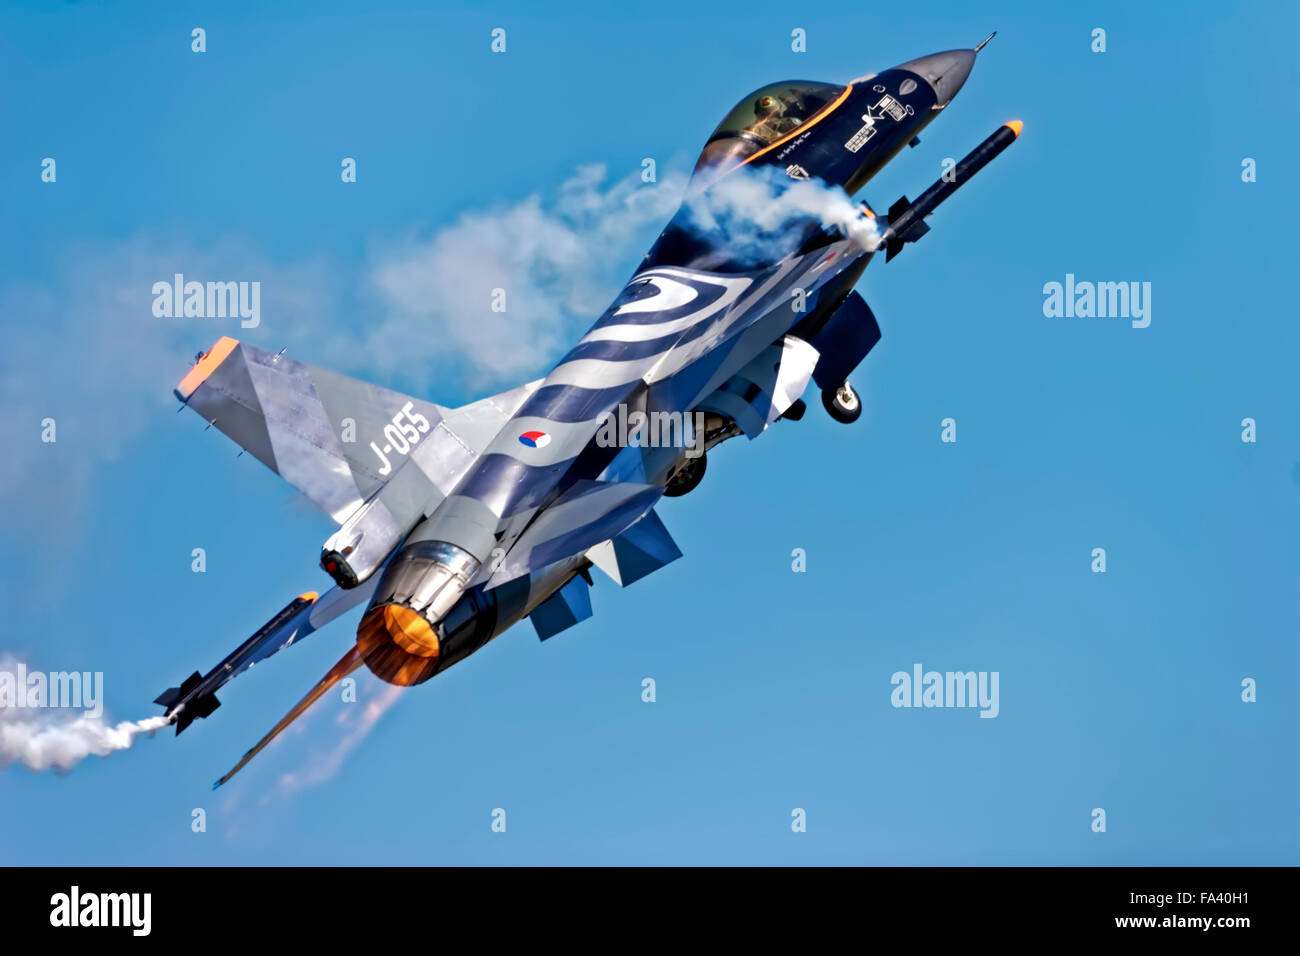 A Royal Netherlands Air Force General Dynamics F-16AM Fighting Falcon, J-055, taking off at the RIAT, RAF Fairford, Stock Photo